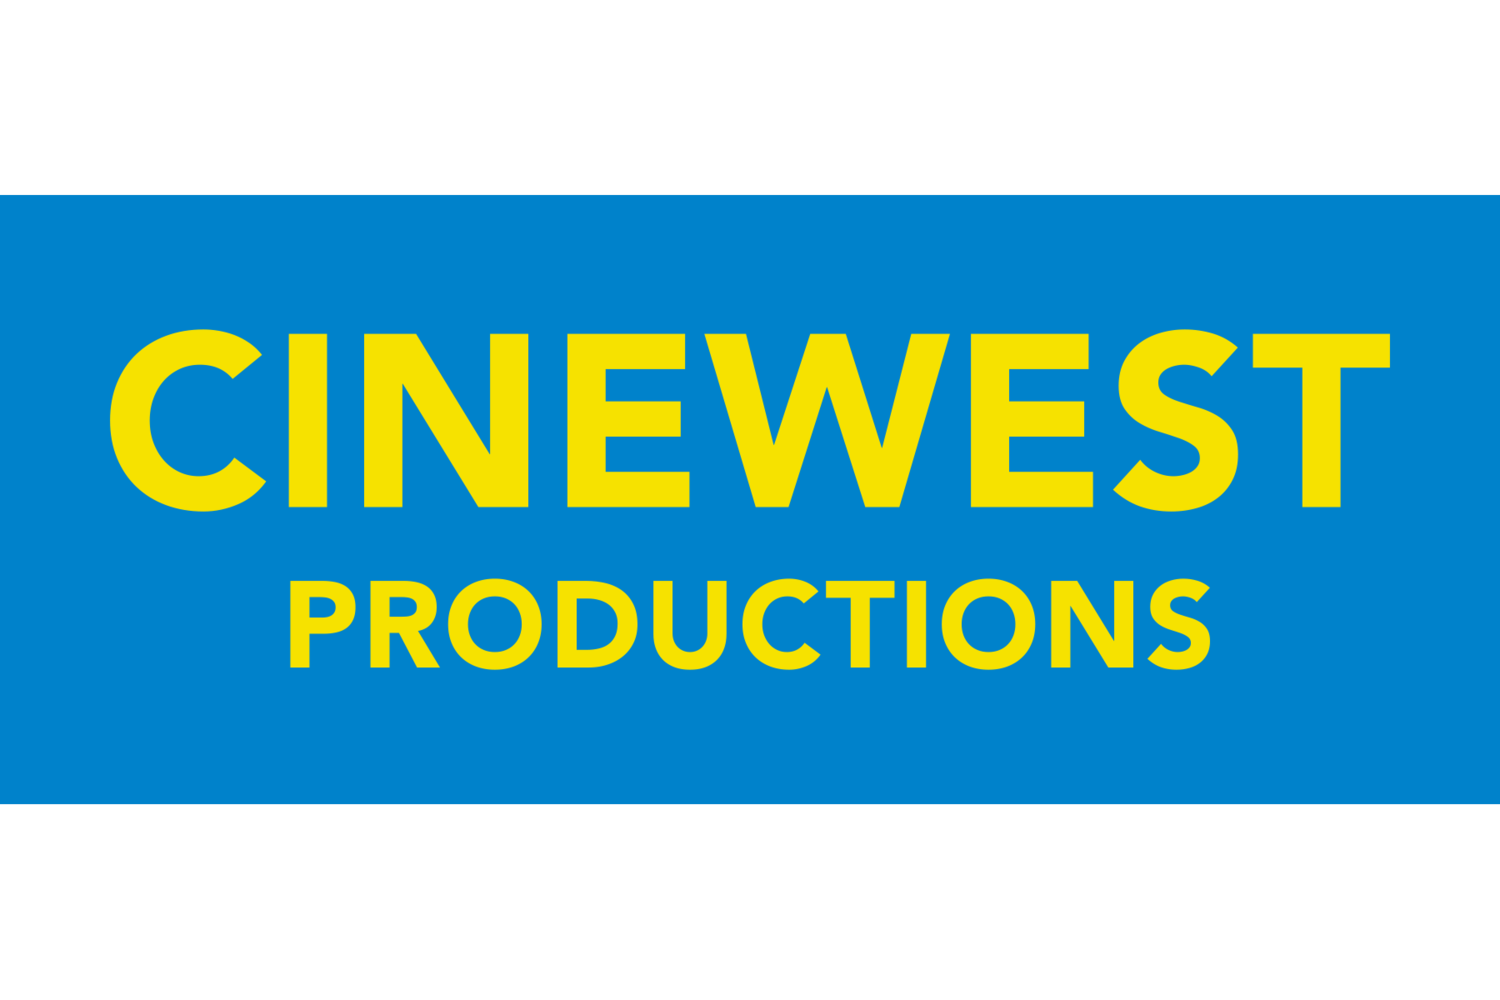 Cinewest Productions